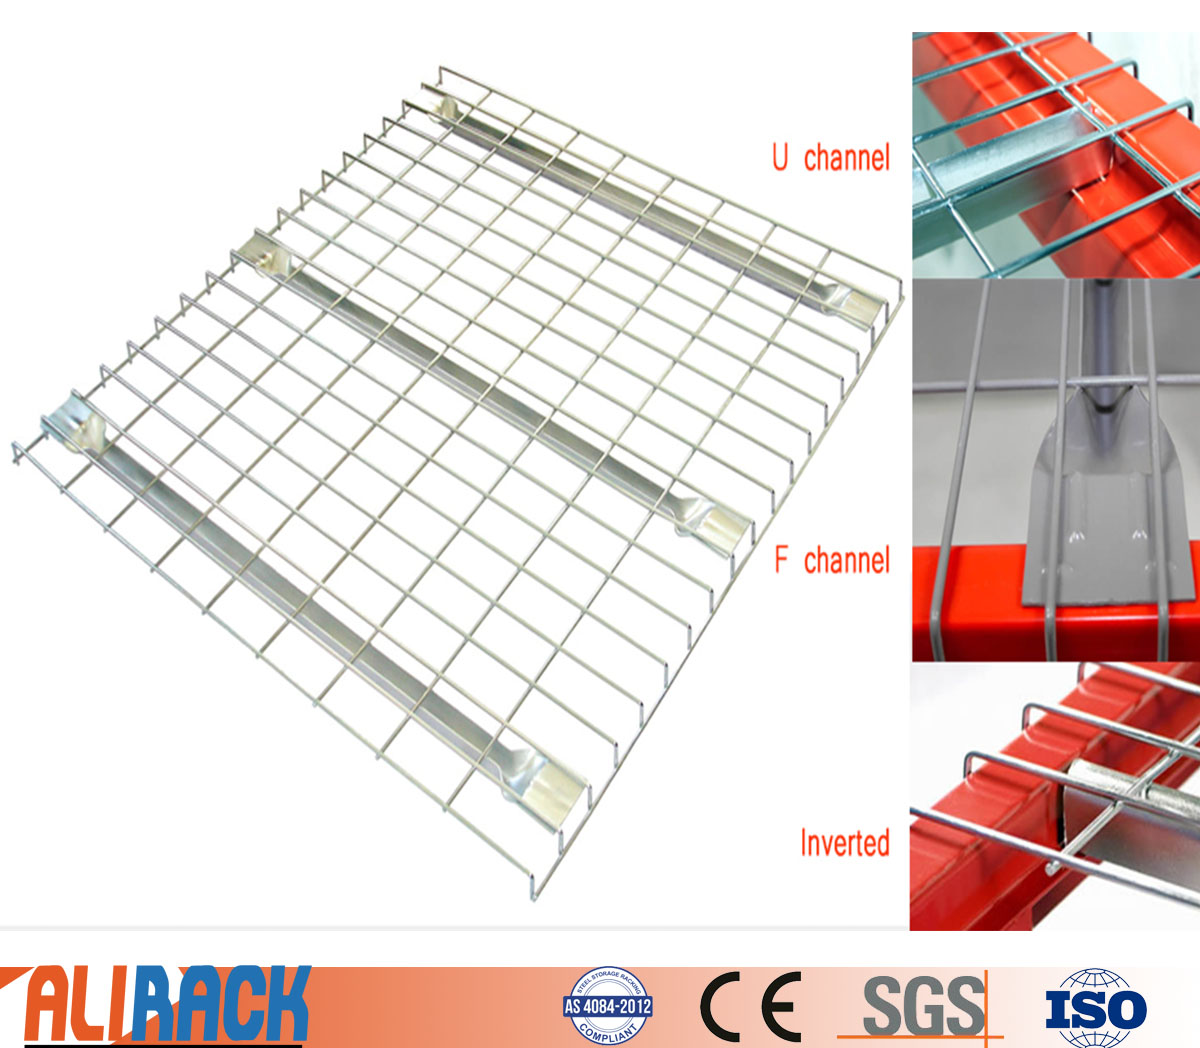 Ali Racking wire mesh decking wire shelving wire mesh deck for pallet racking zinc plated